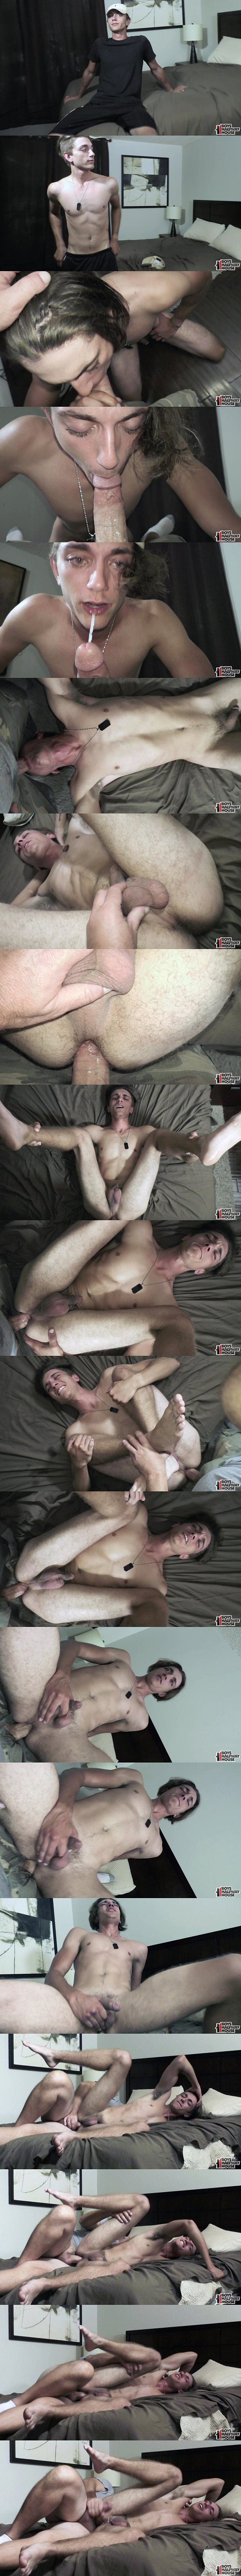 The house manager barebacks Jonas Paige in Young Jock Dicked Down and Bred at Boyshalfwayhouse 02